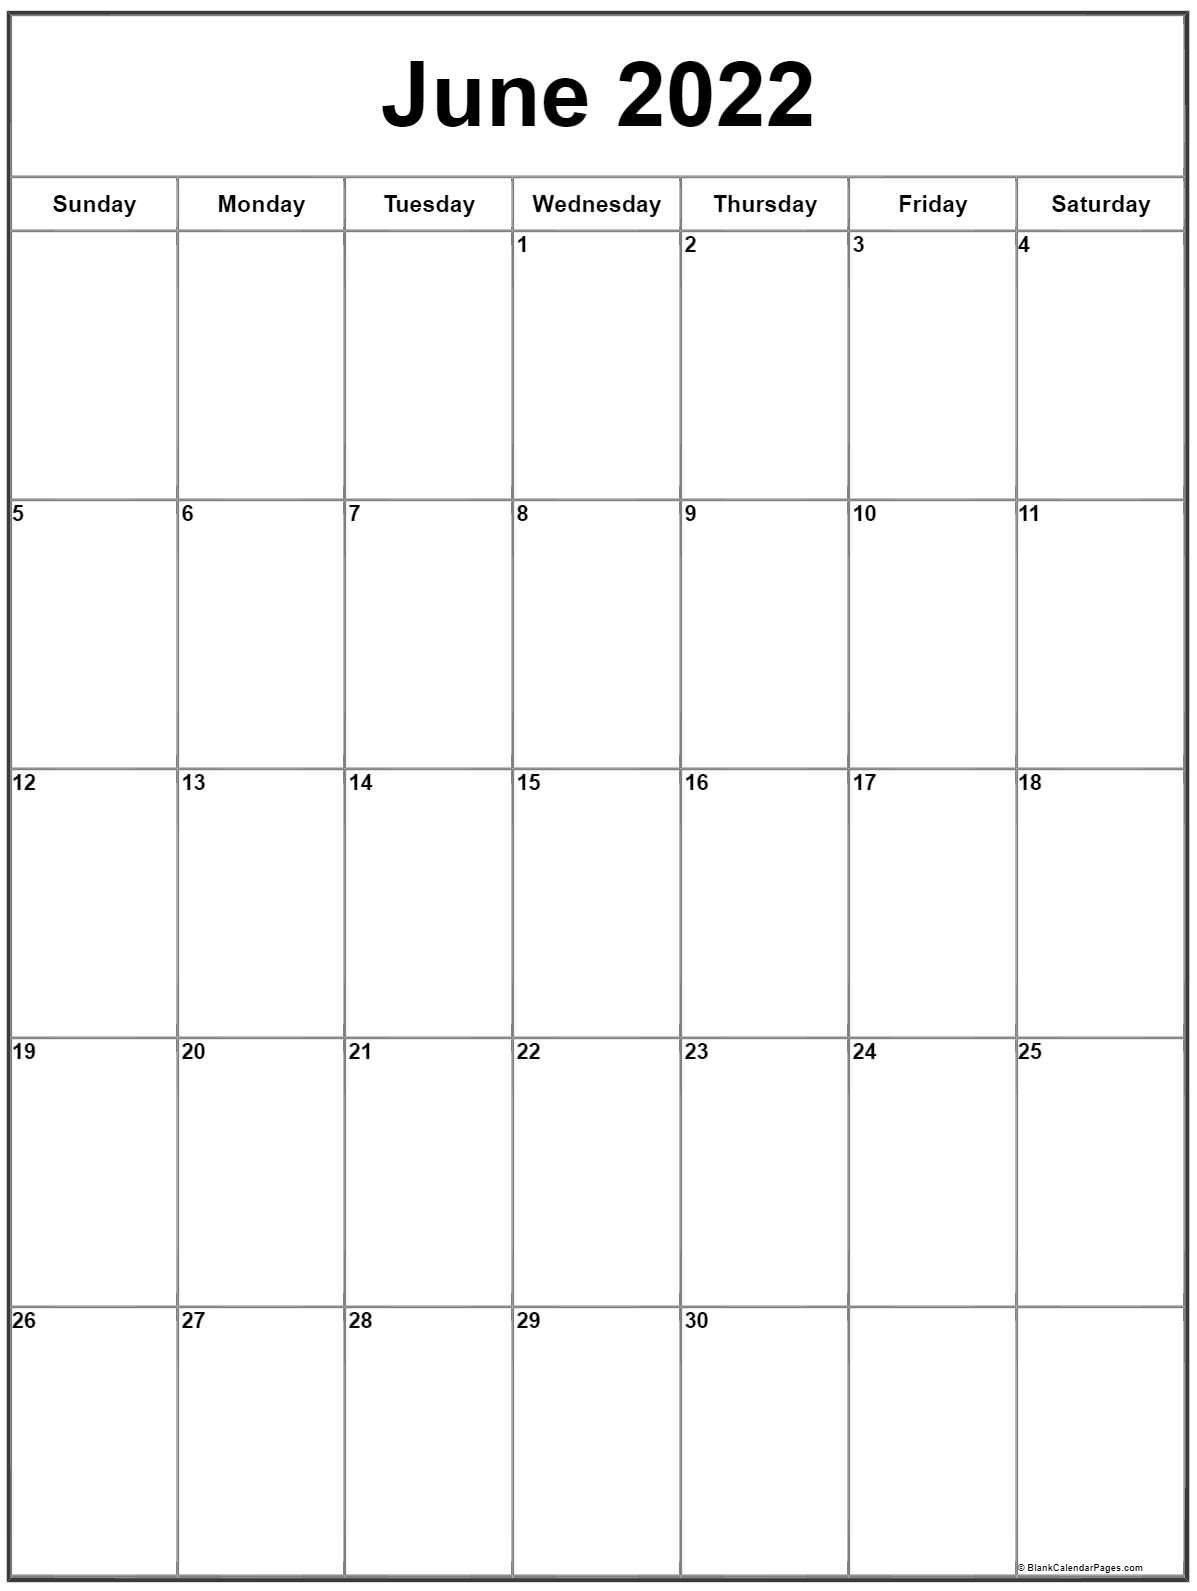 June 2022 Monday calendar. Monday to Sunday